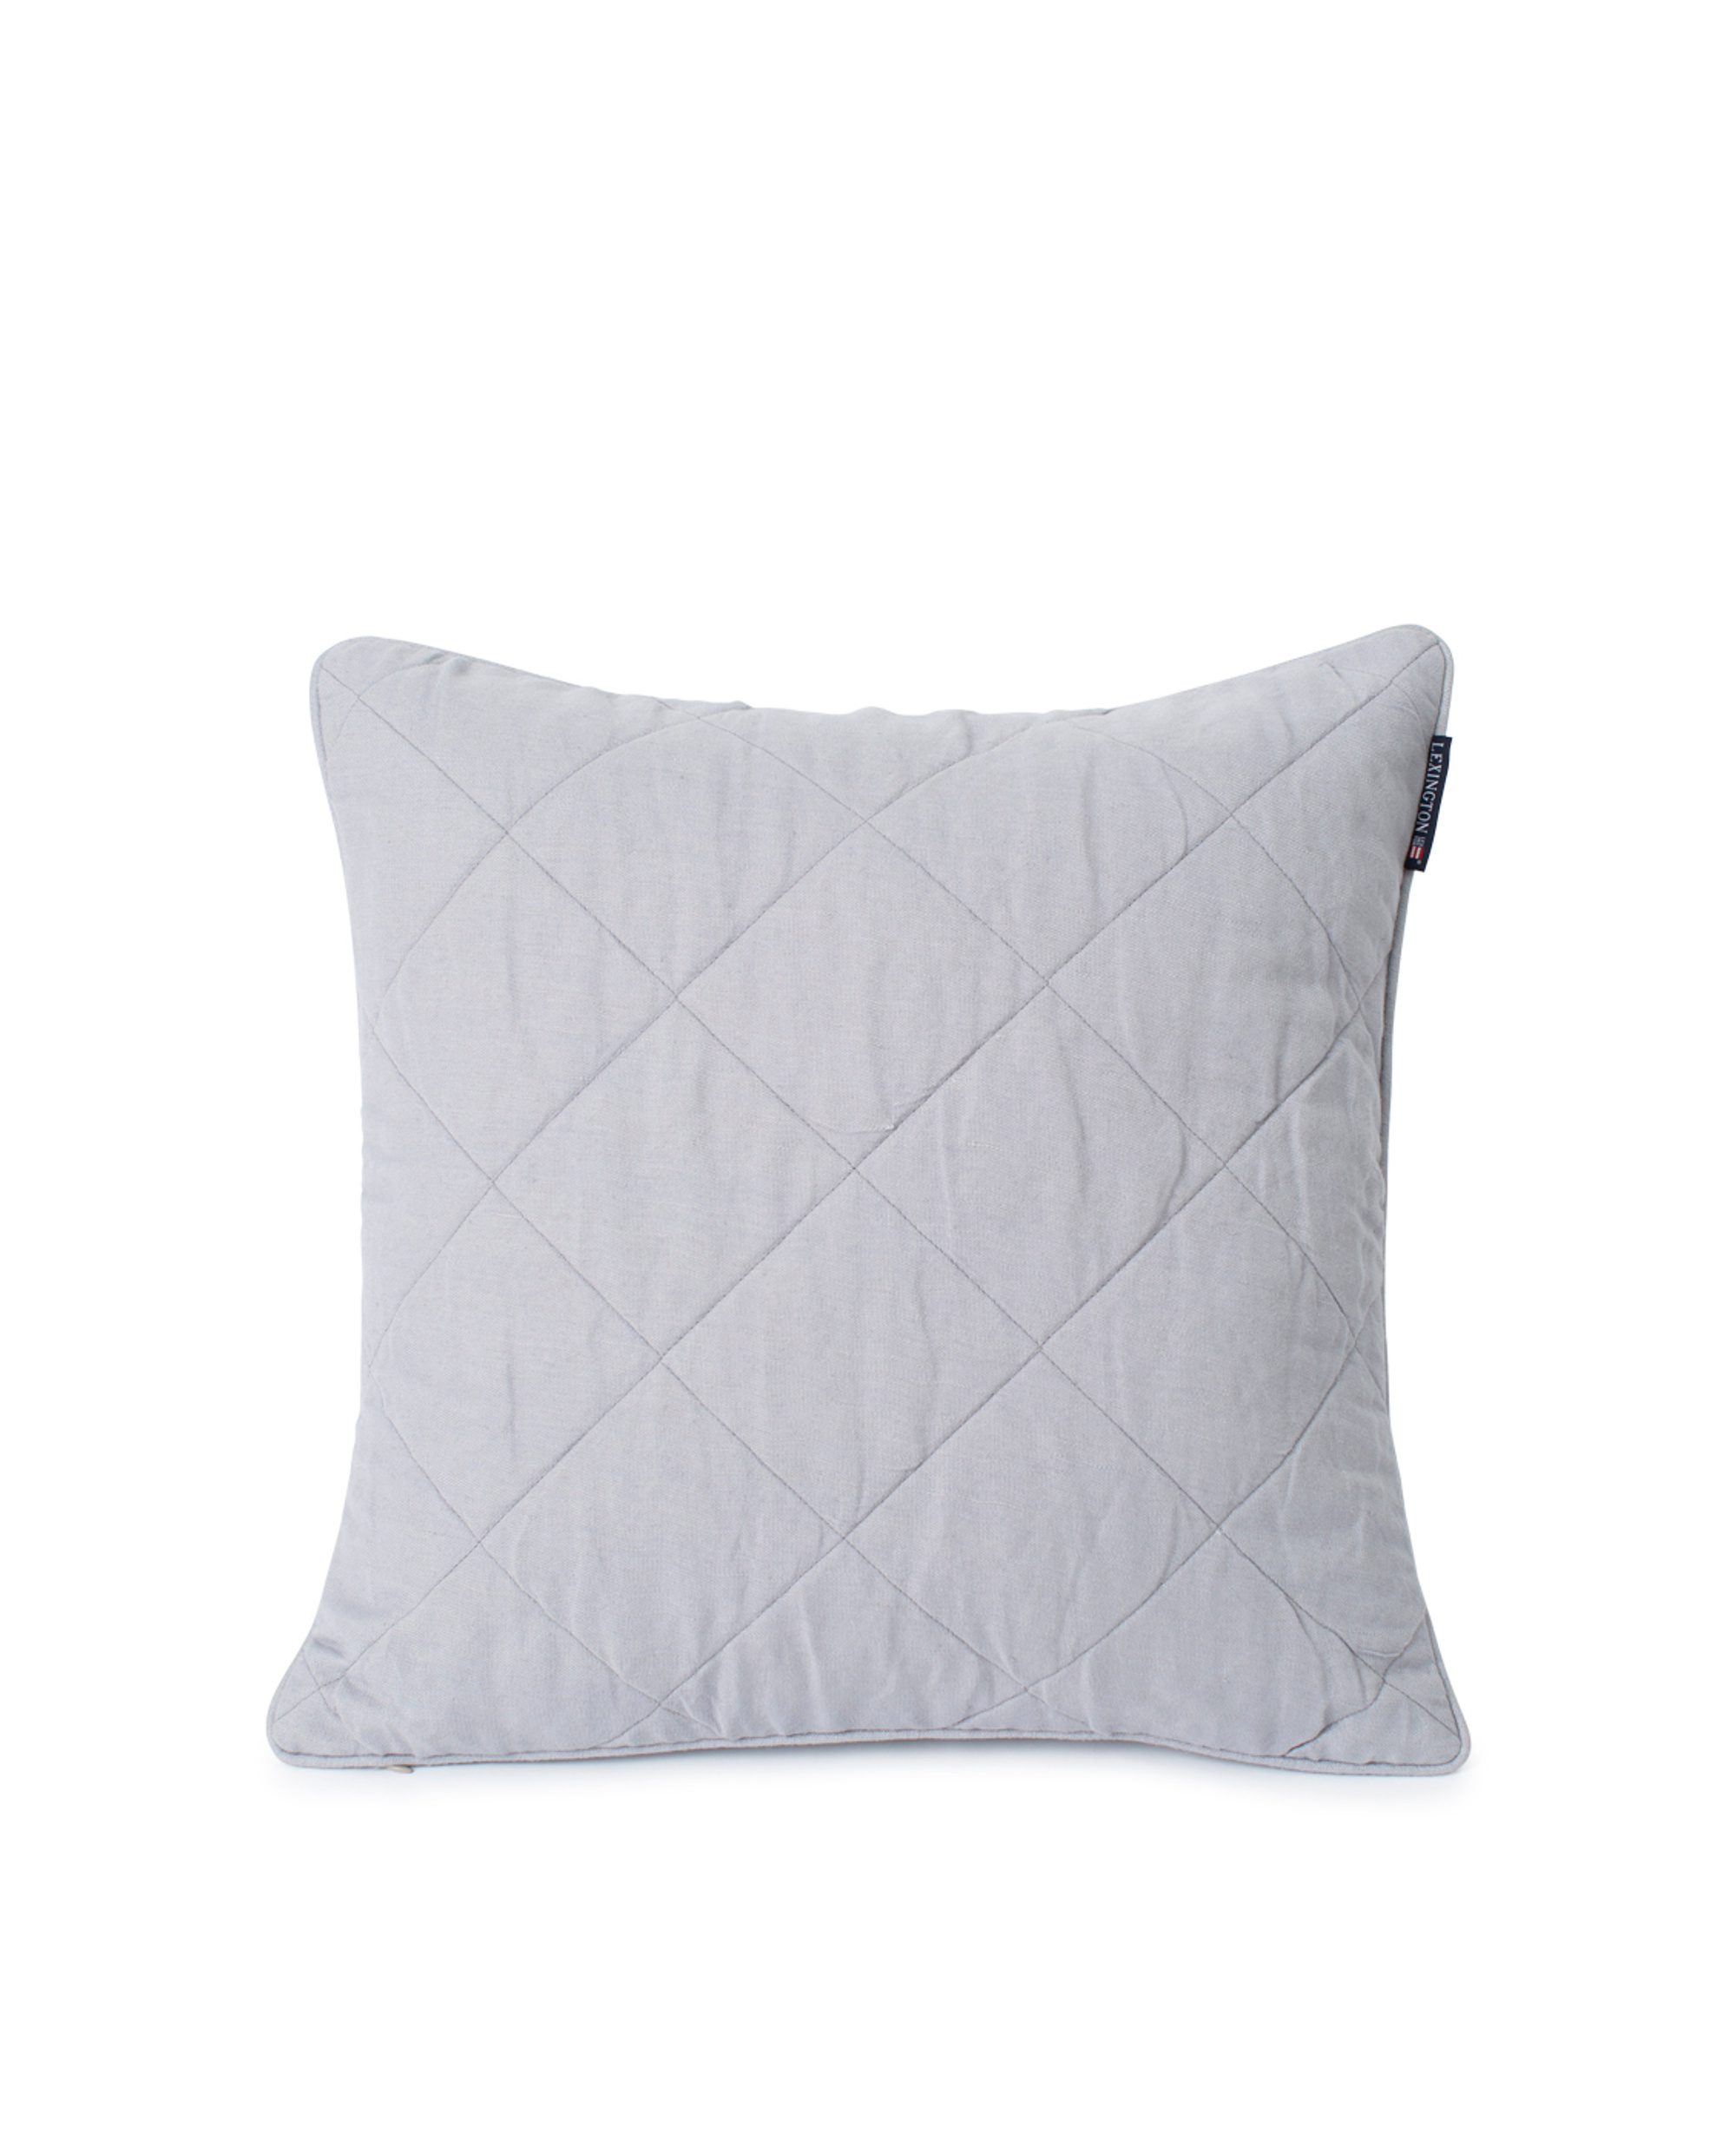 Quilted Linen/Viscose Pillow Cover, Gray